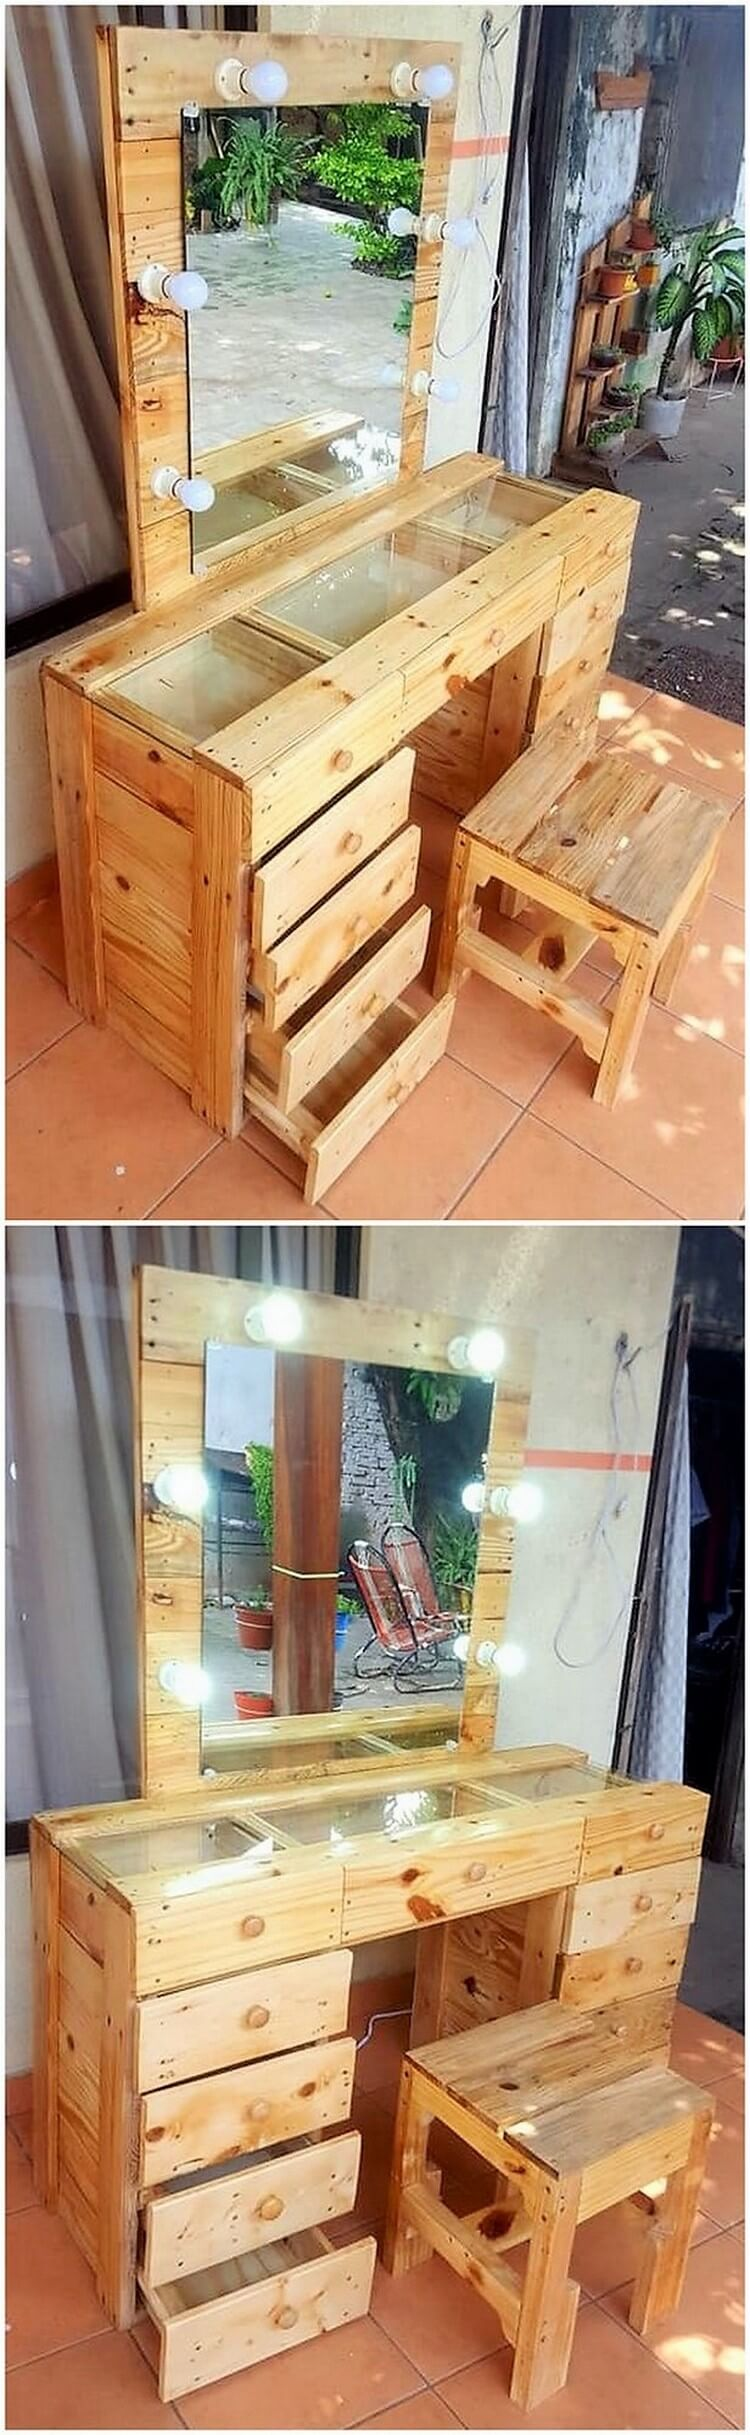 Pallet Dresser with Drawers and Stool